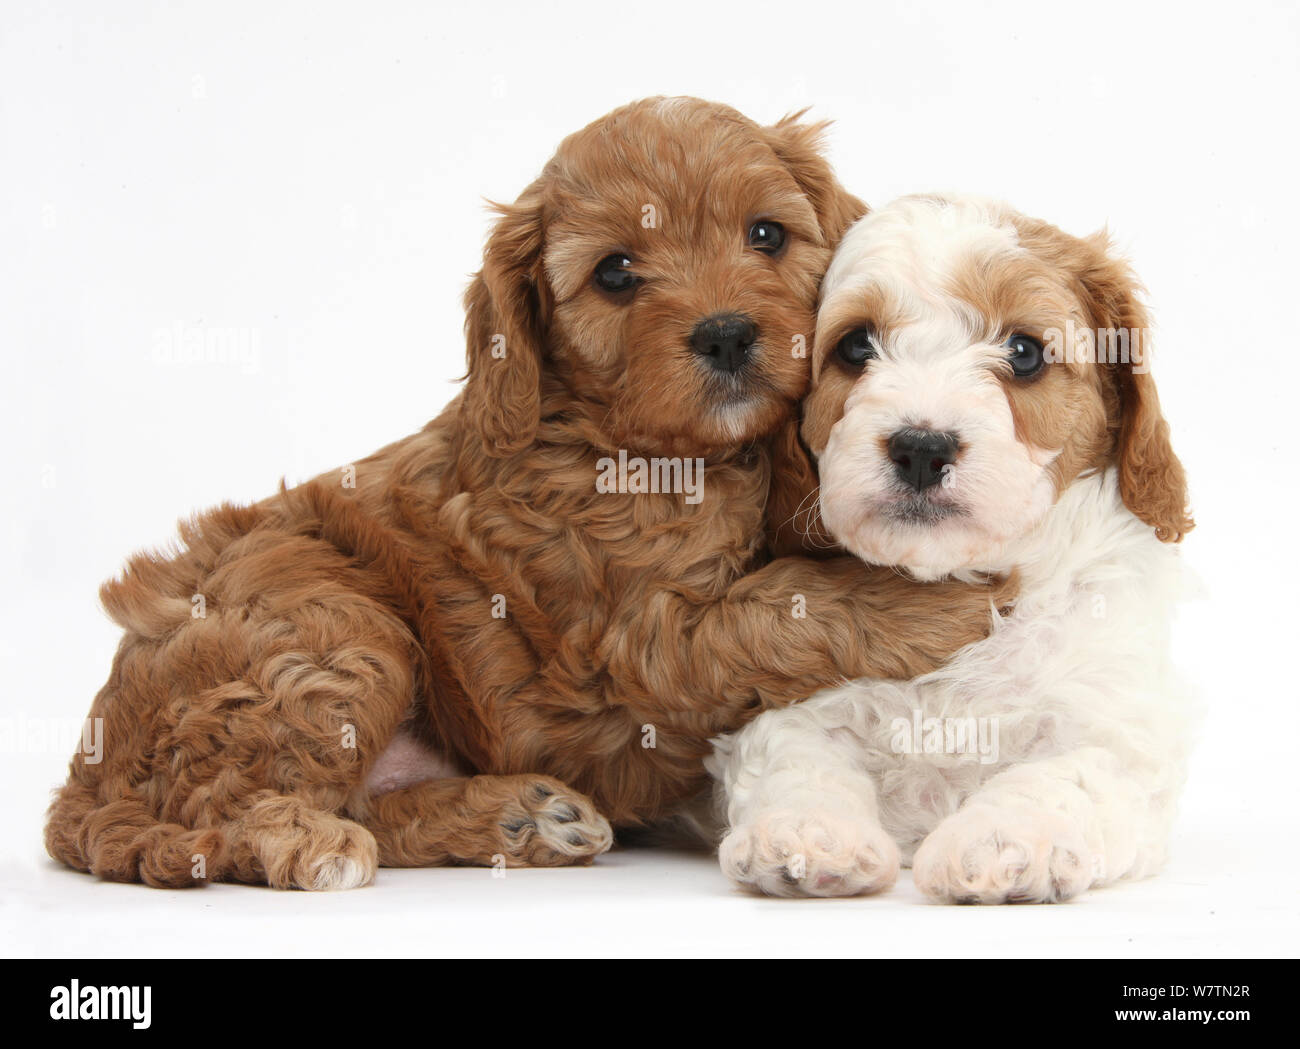 Cute Red And Red And White Cavapoo Puppies 5 Weeks Hugging Against White Background Stock Photo Alamy